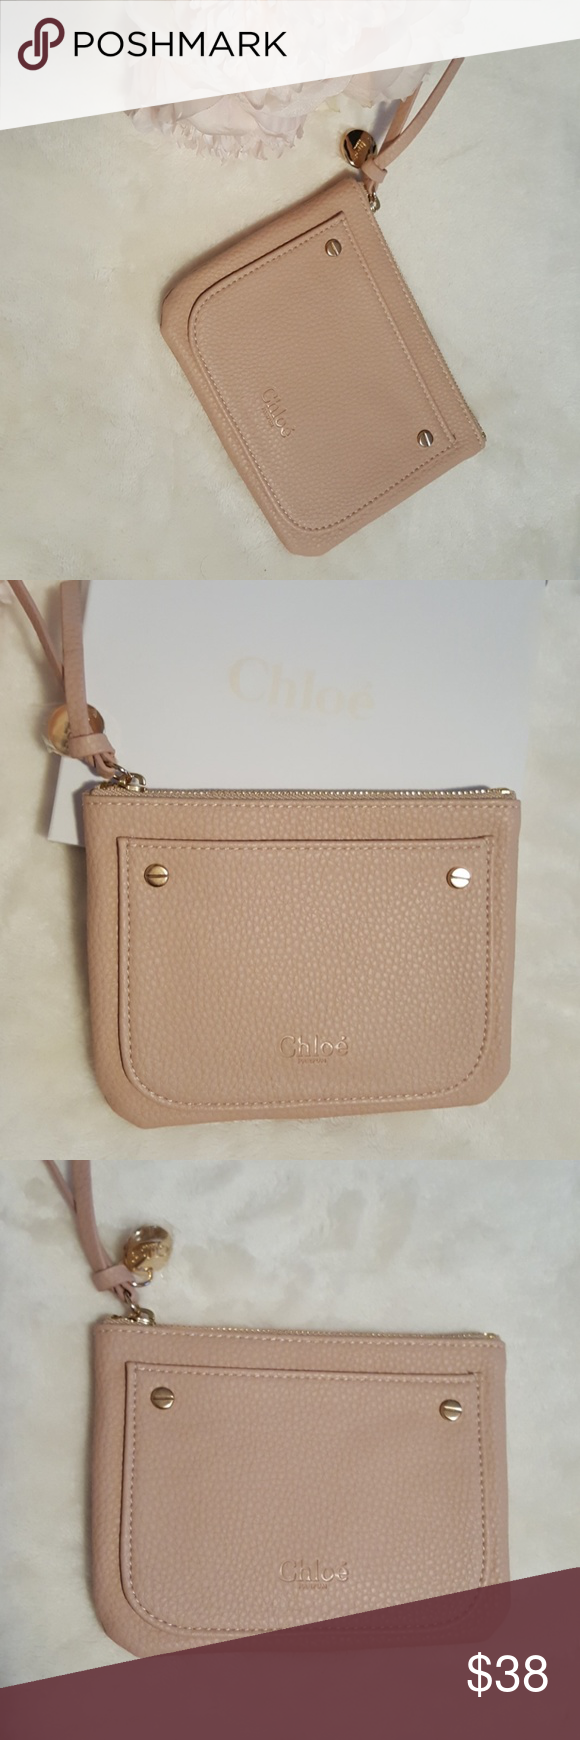 NIB CHLOE POUCH Adorable blush Chloe pouch with gold hardware   a front  pocket. Comes 501823cf7478a